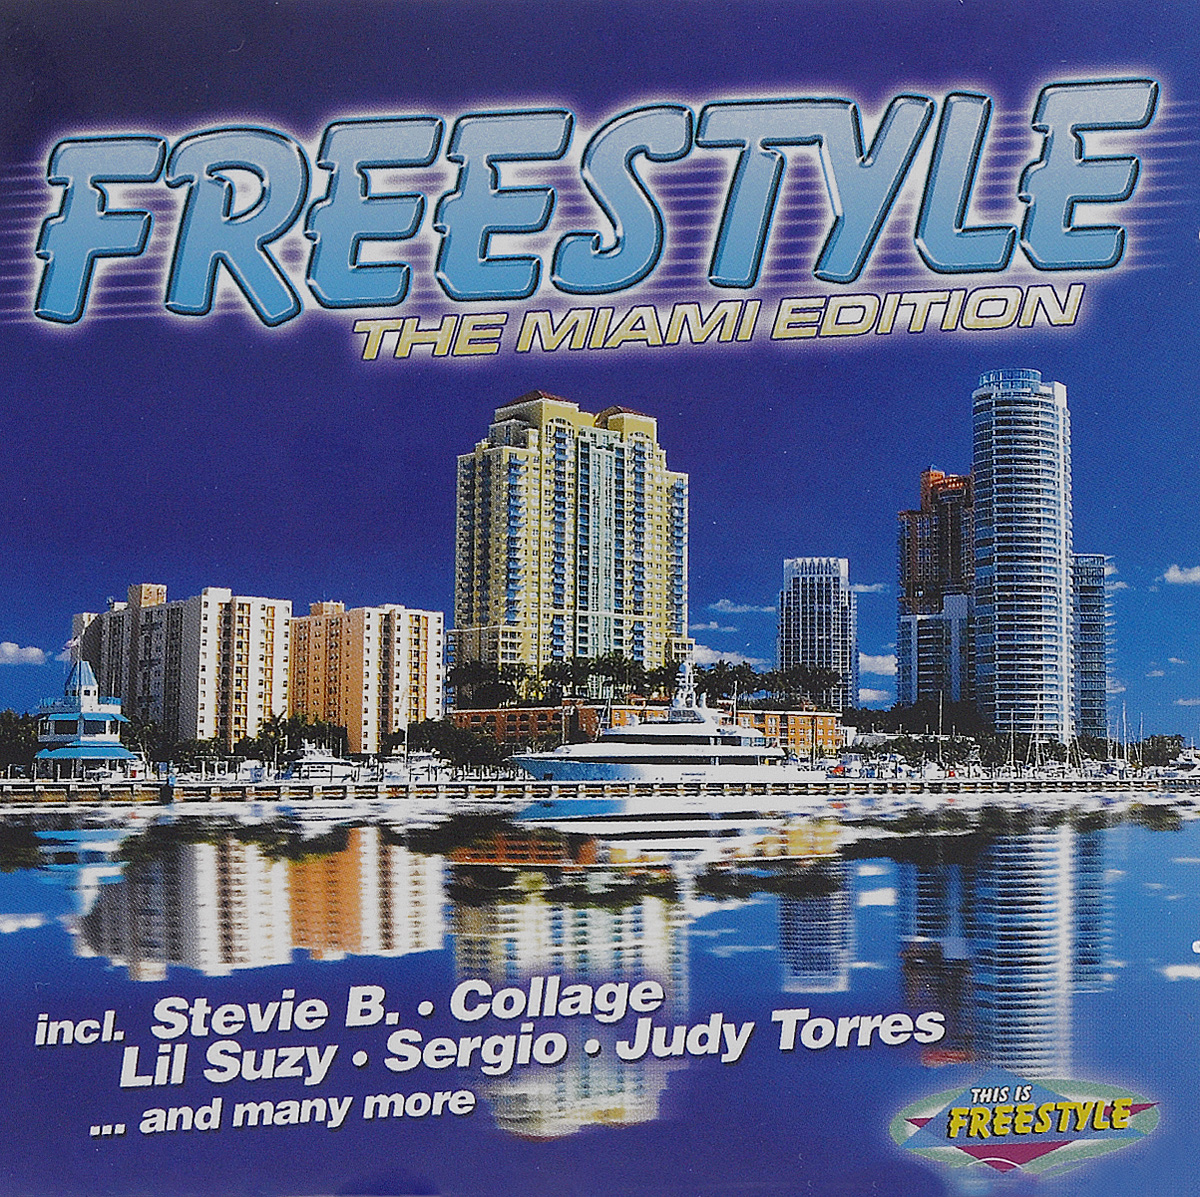 Freestyle. The Miami Edition (2 CD) johnny o rookie severin jayda soft touch лила грейс roxanna shineaz junior tiara suga mama x on jaylez maximnoise ники дэниэлс duap mc ричи сантьяго freestyle vol 40 best of final edition 3 cd